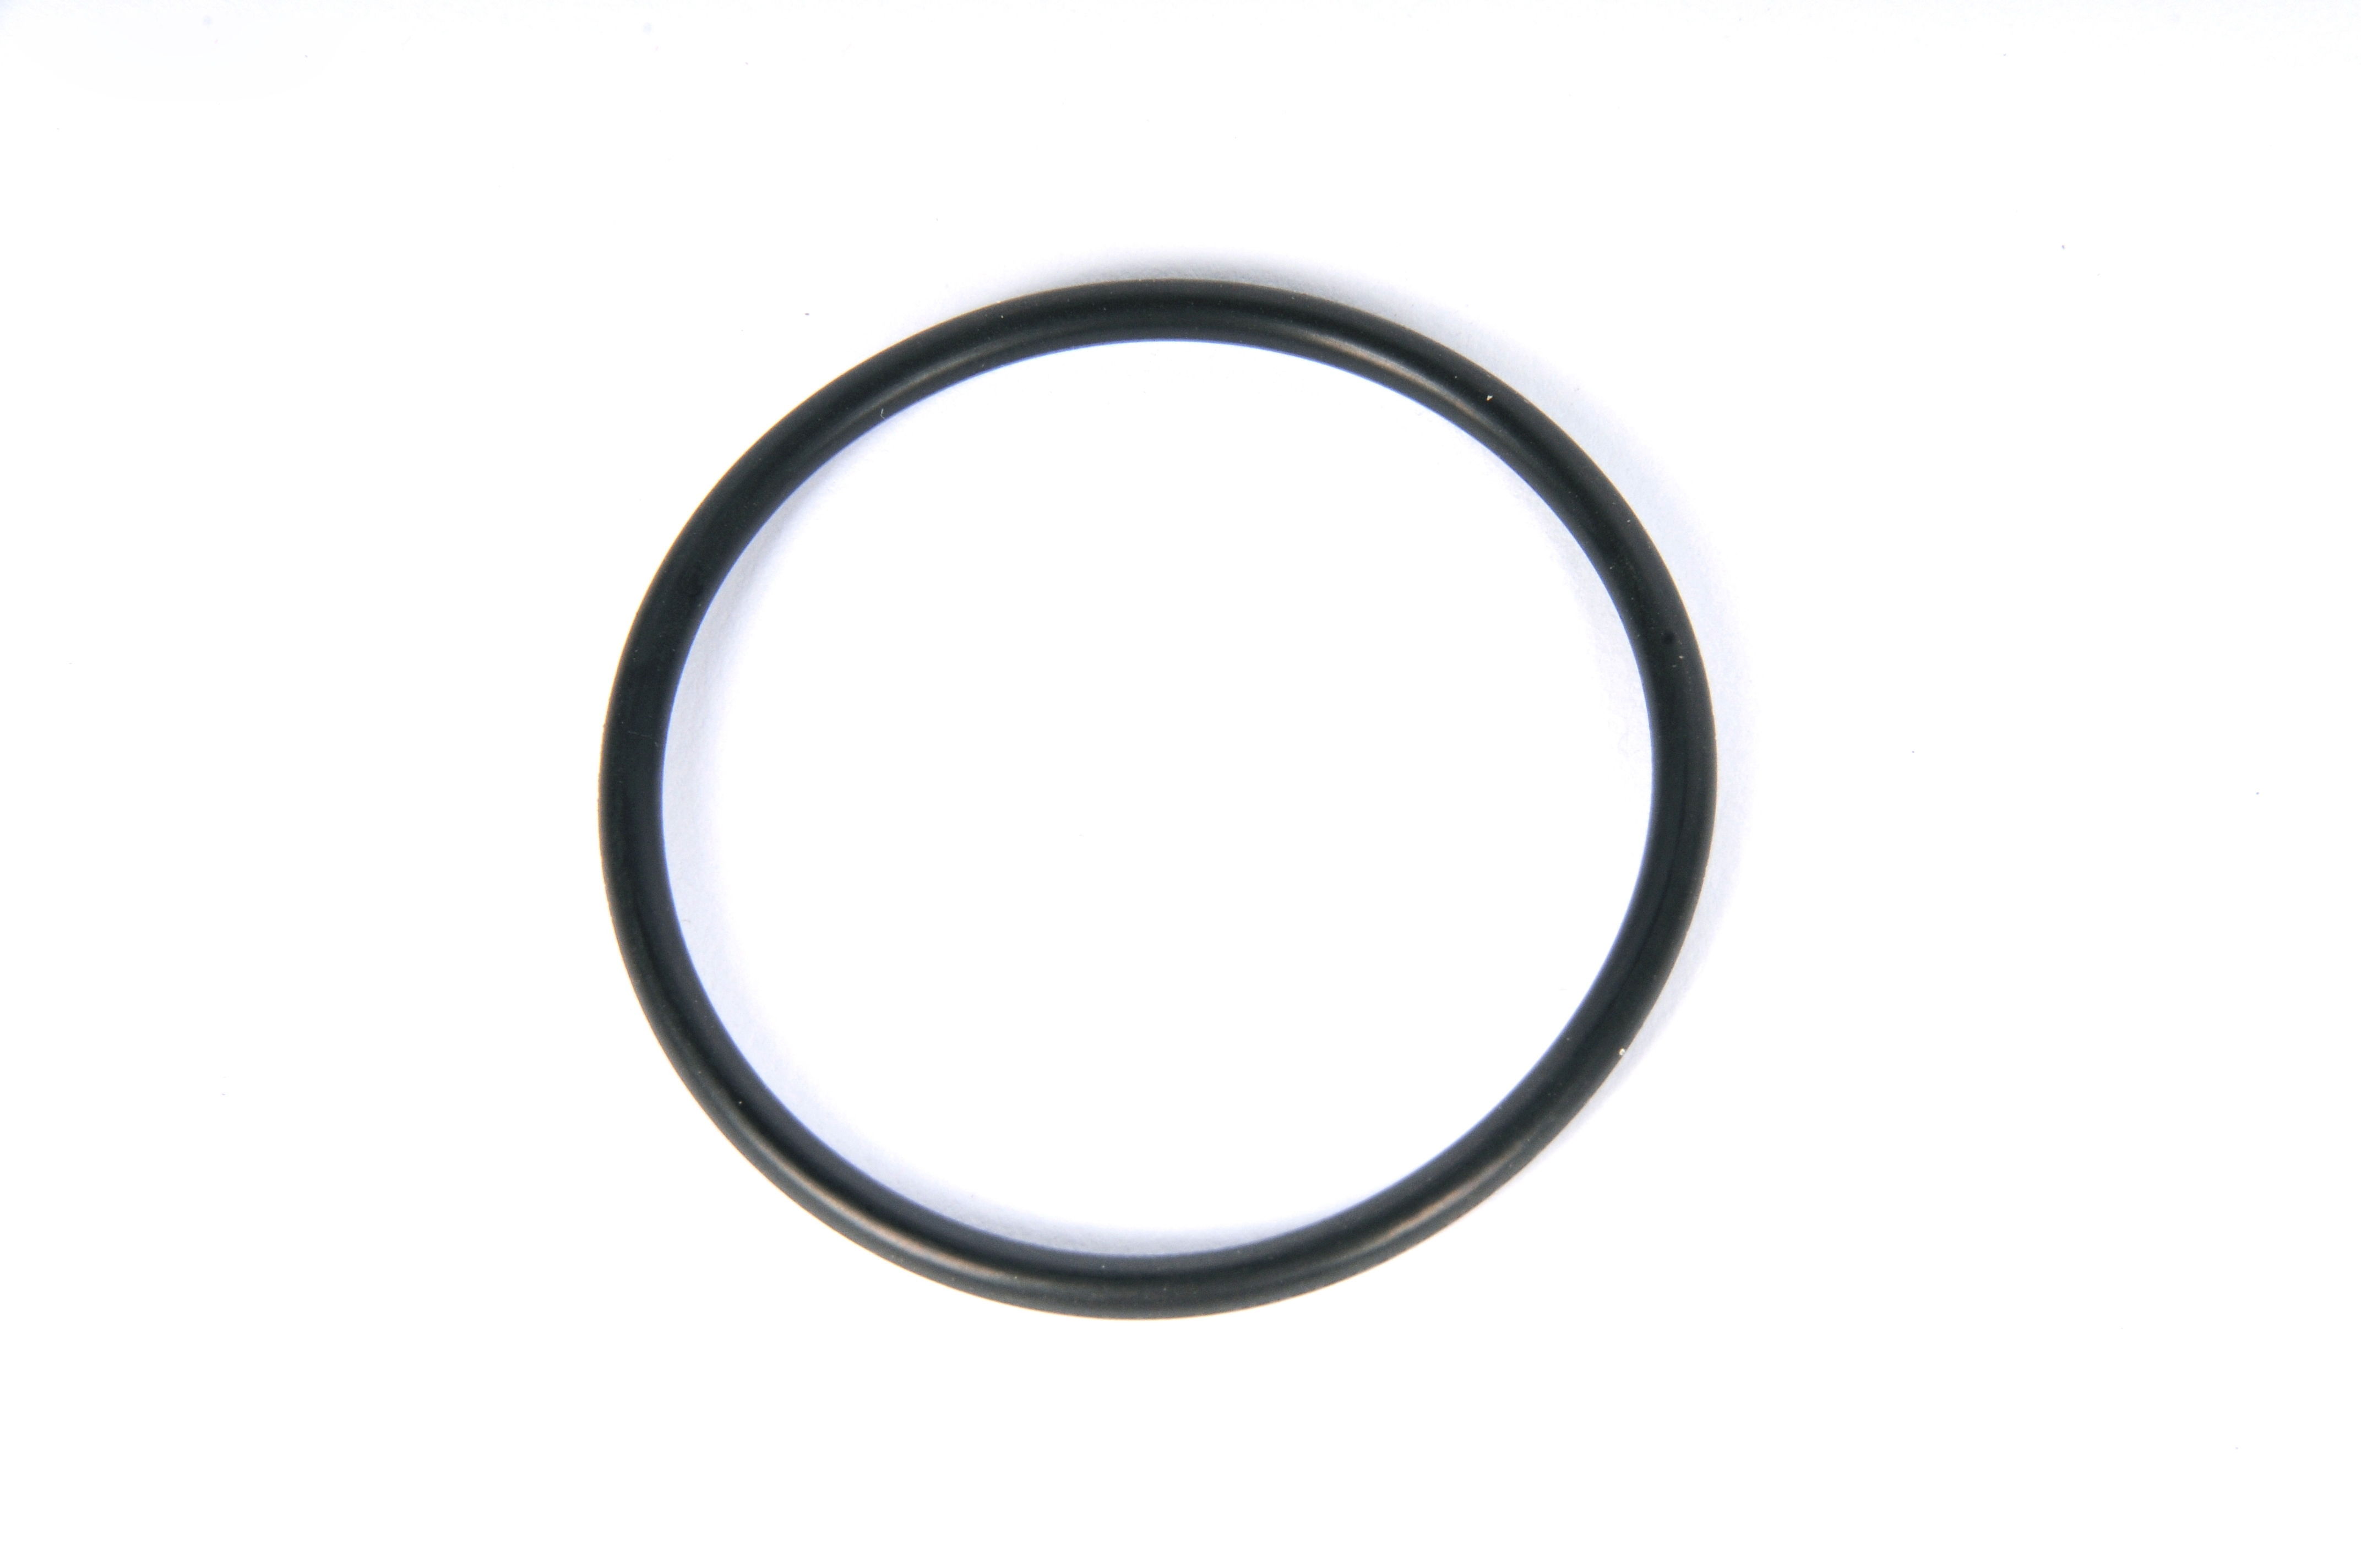 ACDELCO OE SERVICE - Prop Shft Trans Flange Seal (O-Ring) - DCB 24239769